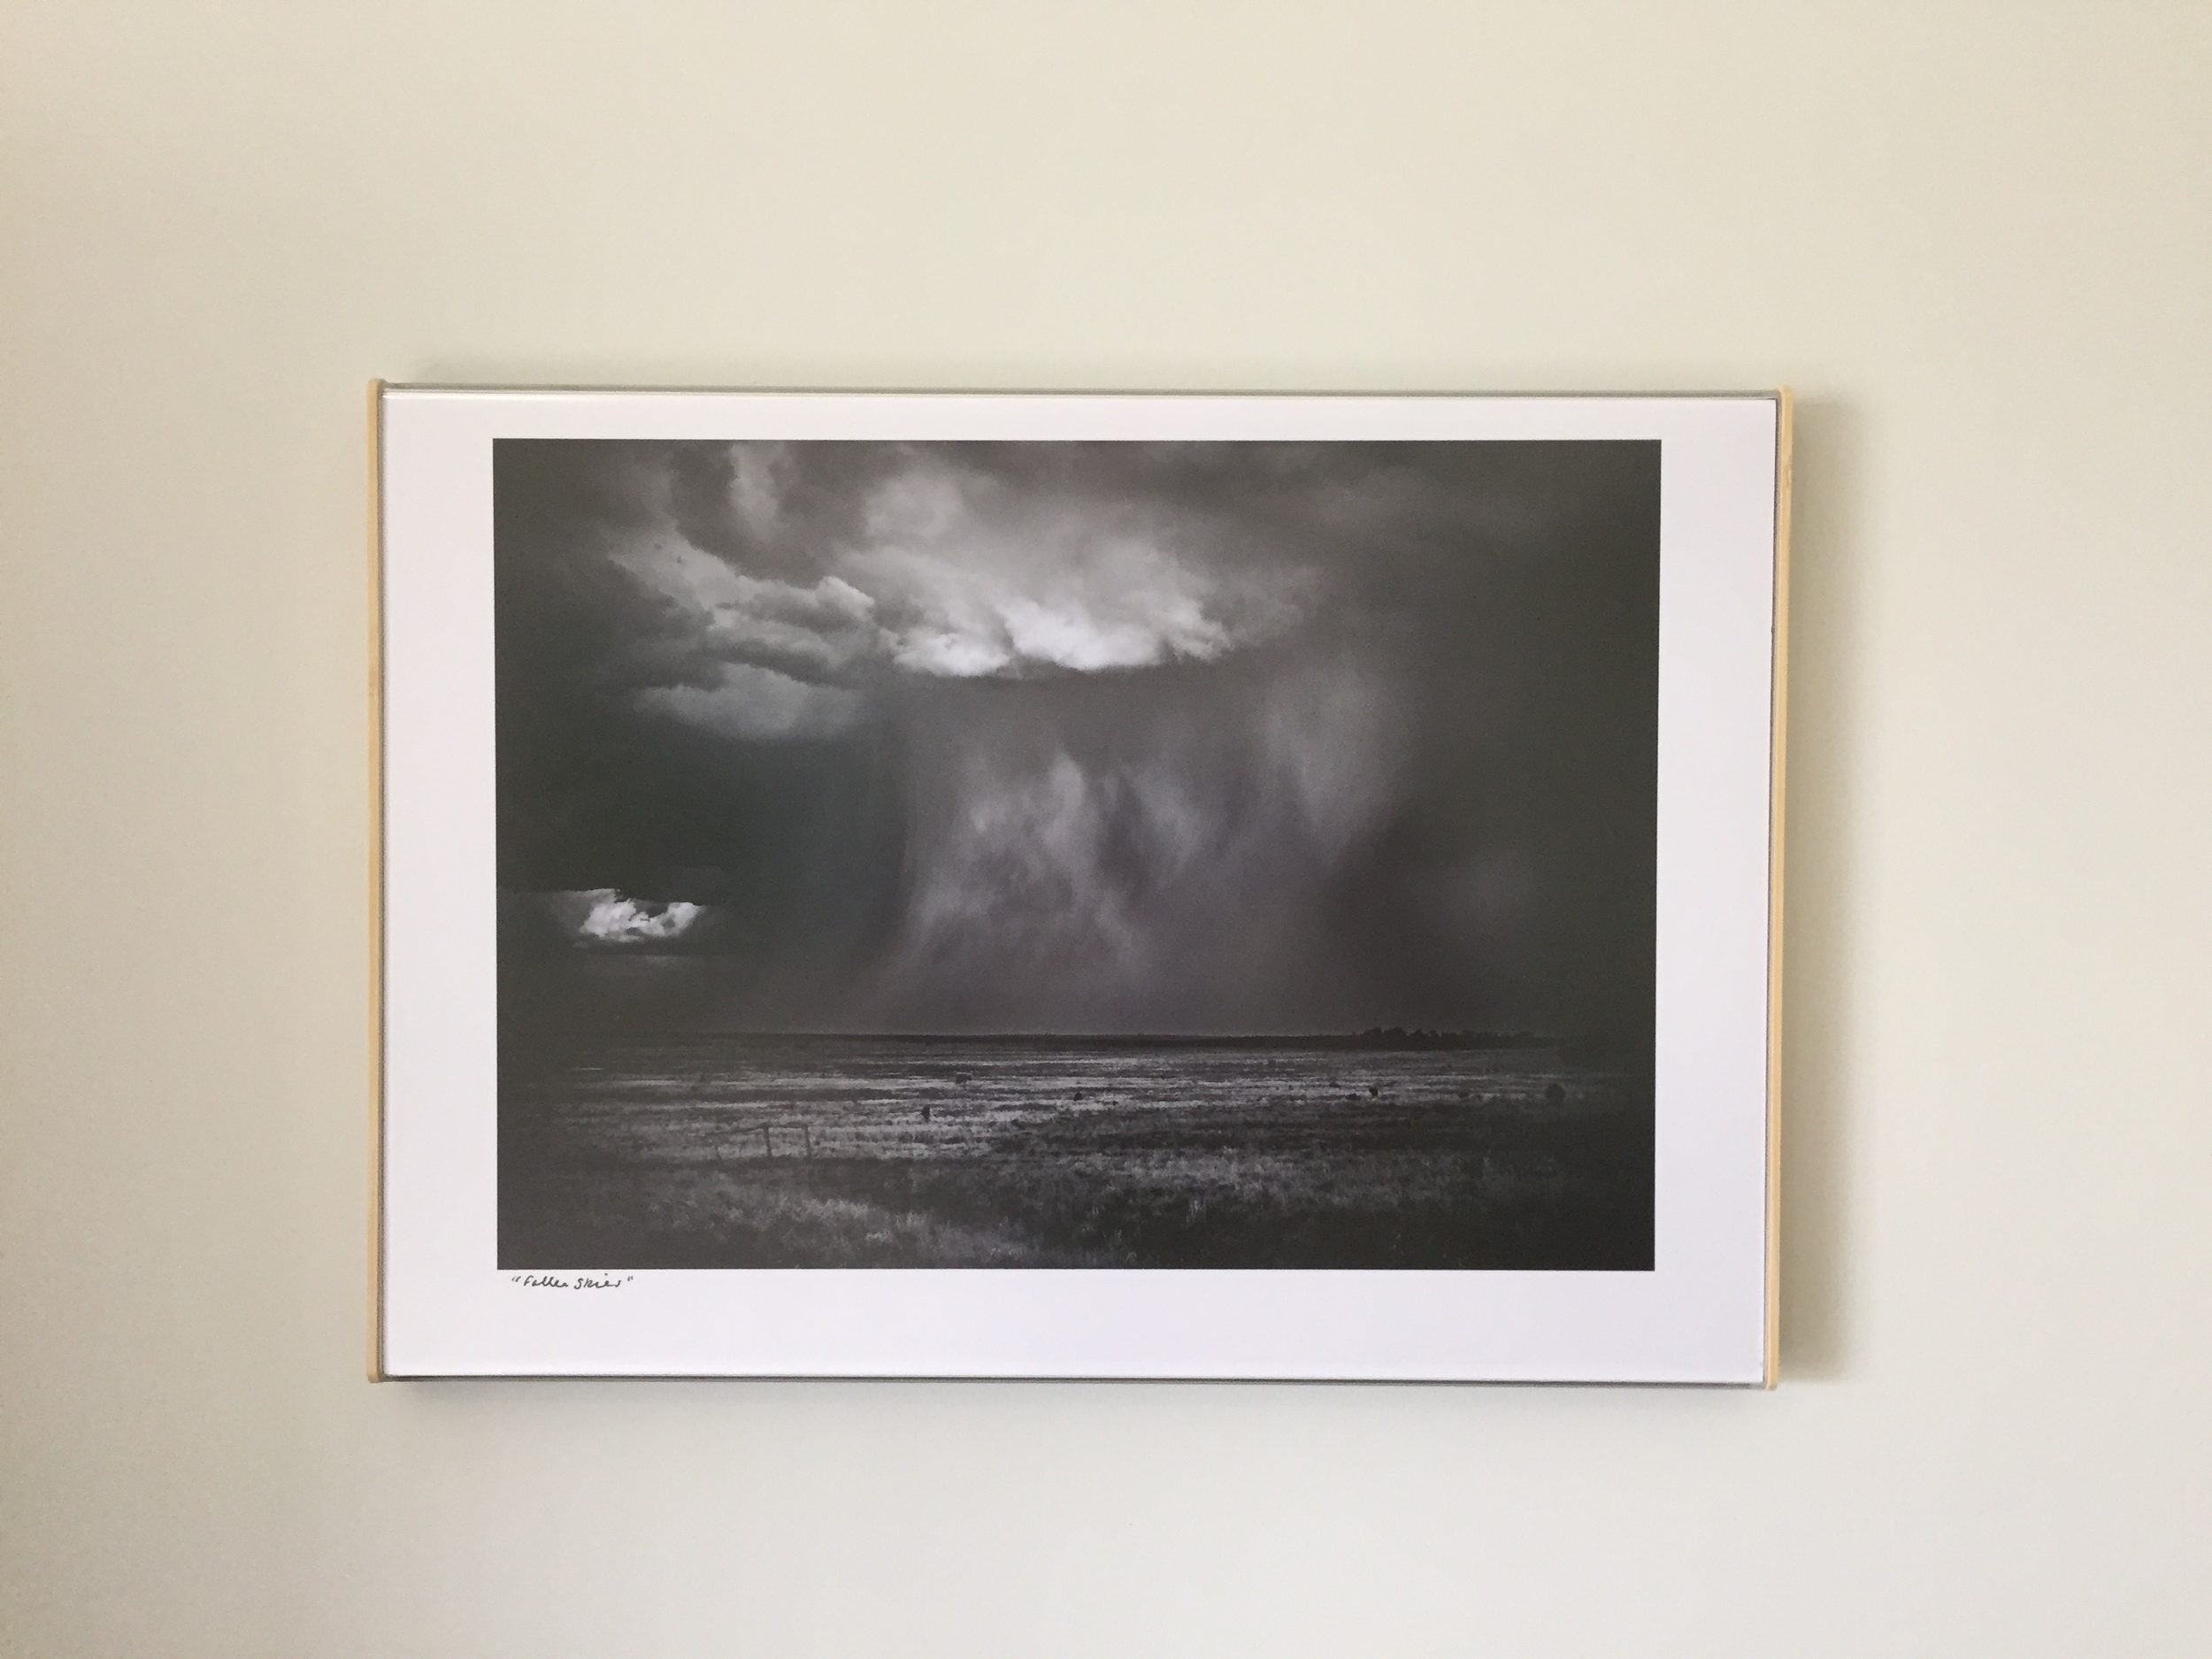 """""""Fallen Skies"""" after Curator Clip was repositioned under better lighting. No glare can be seen here."""